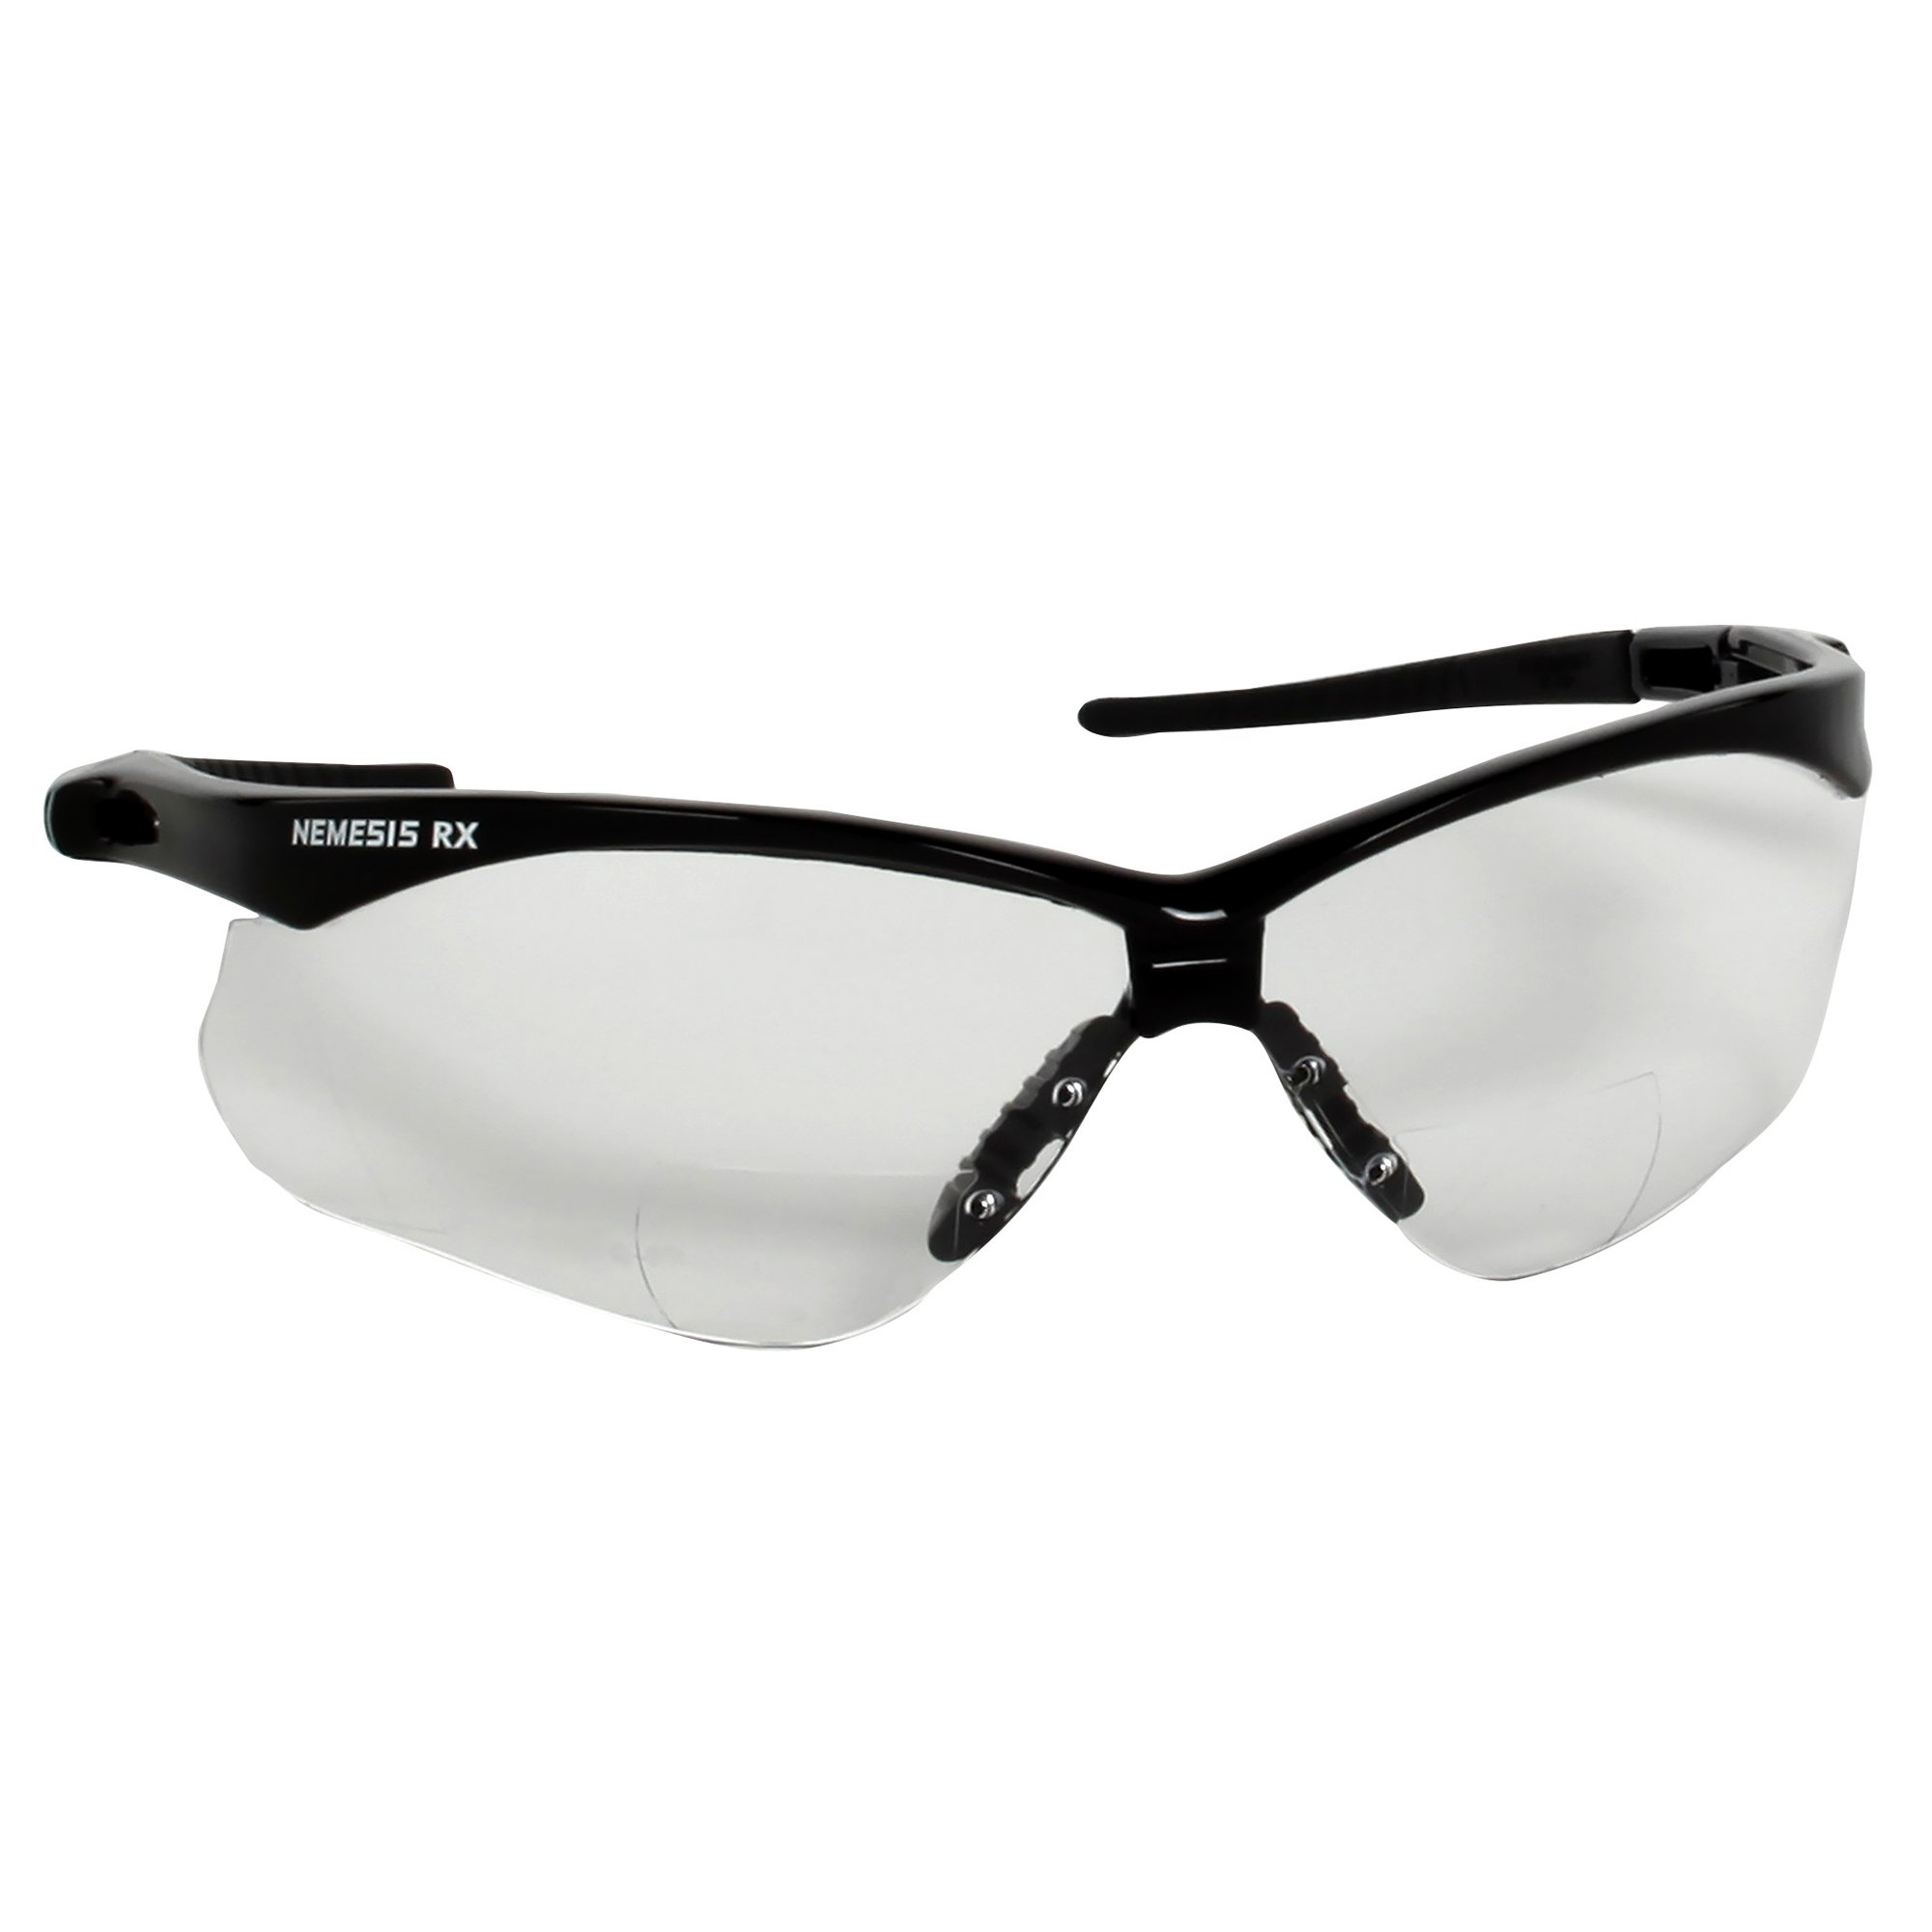 Jackson Safety V60 Nemesis Vision Correction Safety Glasses (28624), Clear Readers with +2.0 Diopters, Black Frame, 6 Pairs/Case by KLEENGUARD